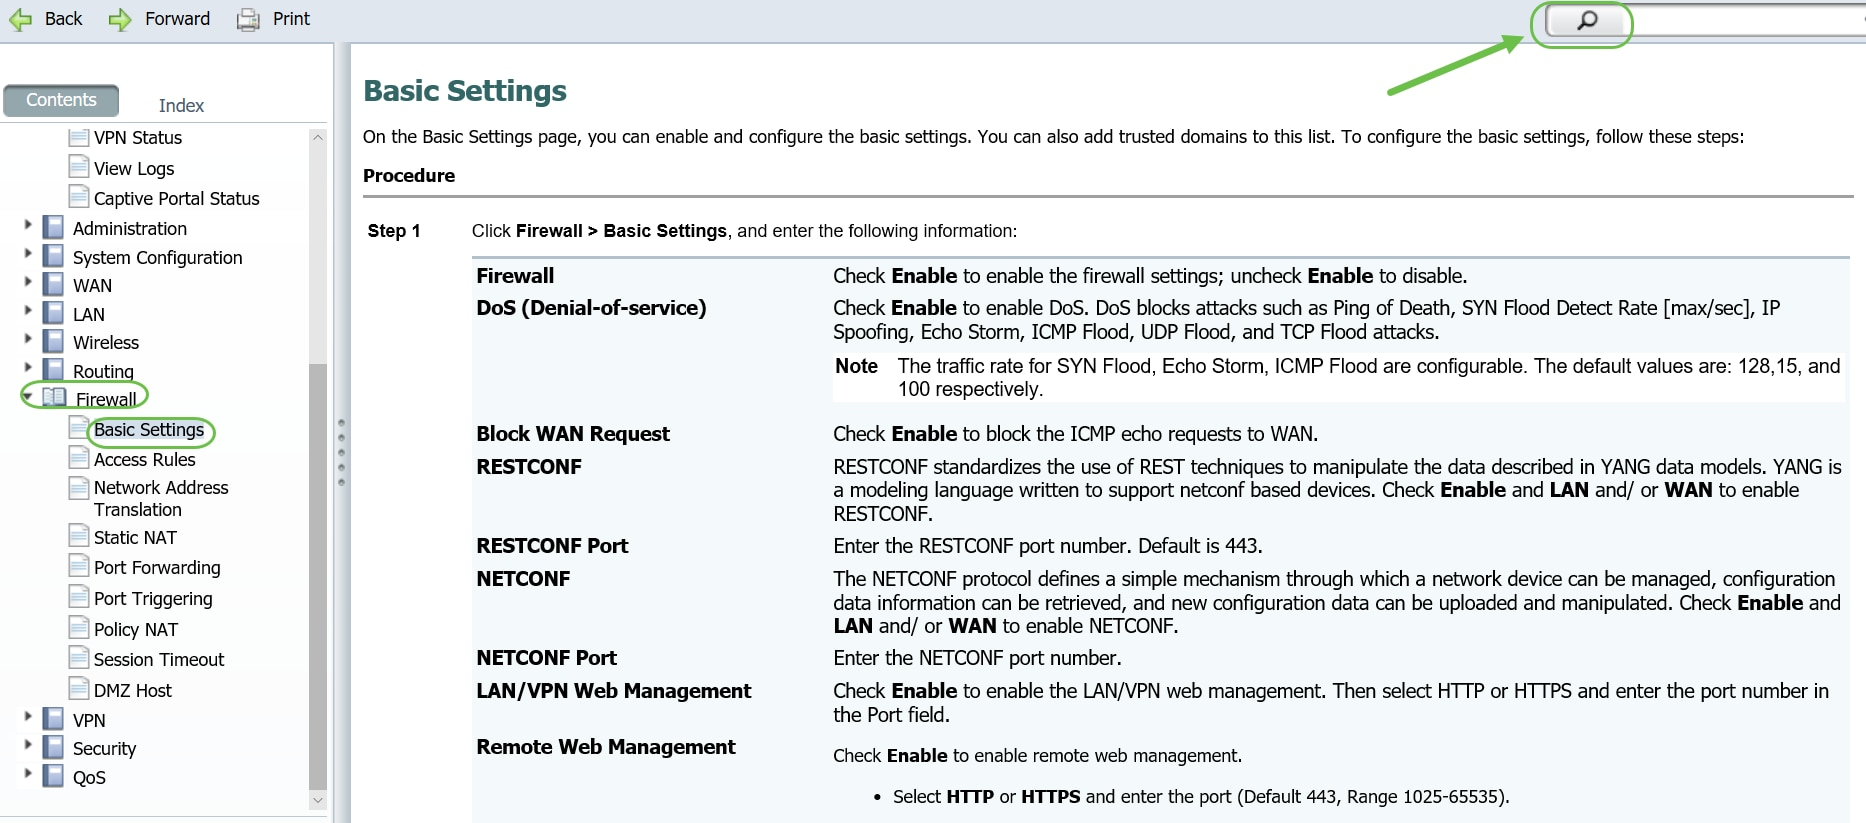 Troubleshooting on RV160 and RV260 Routers - Cisco